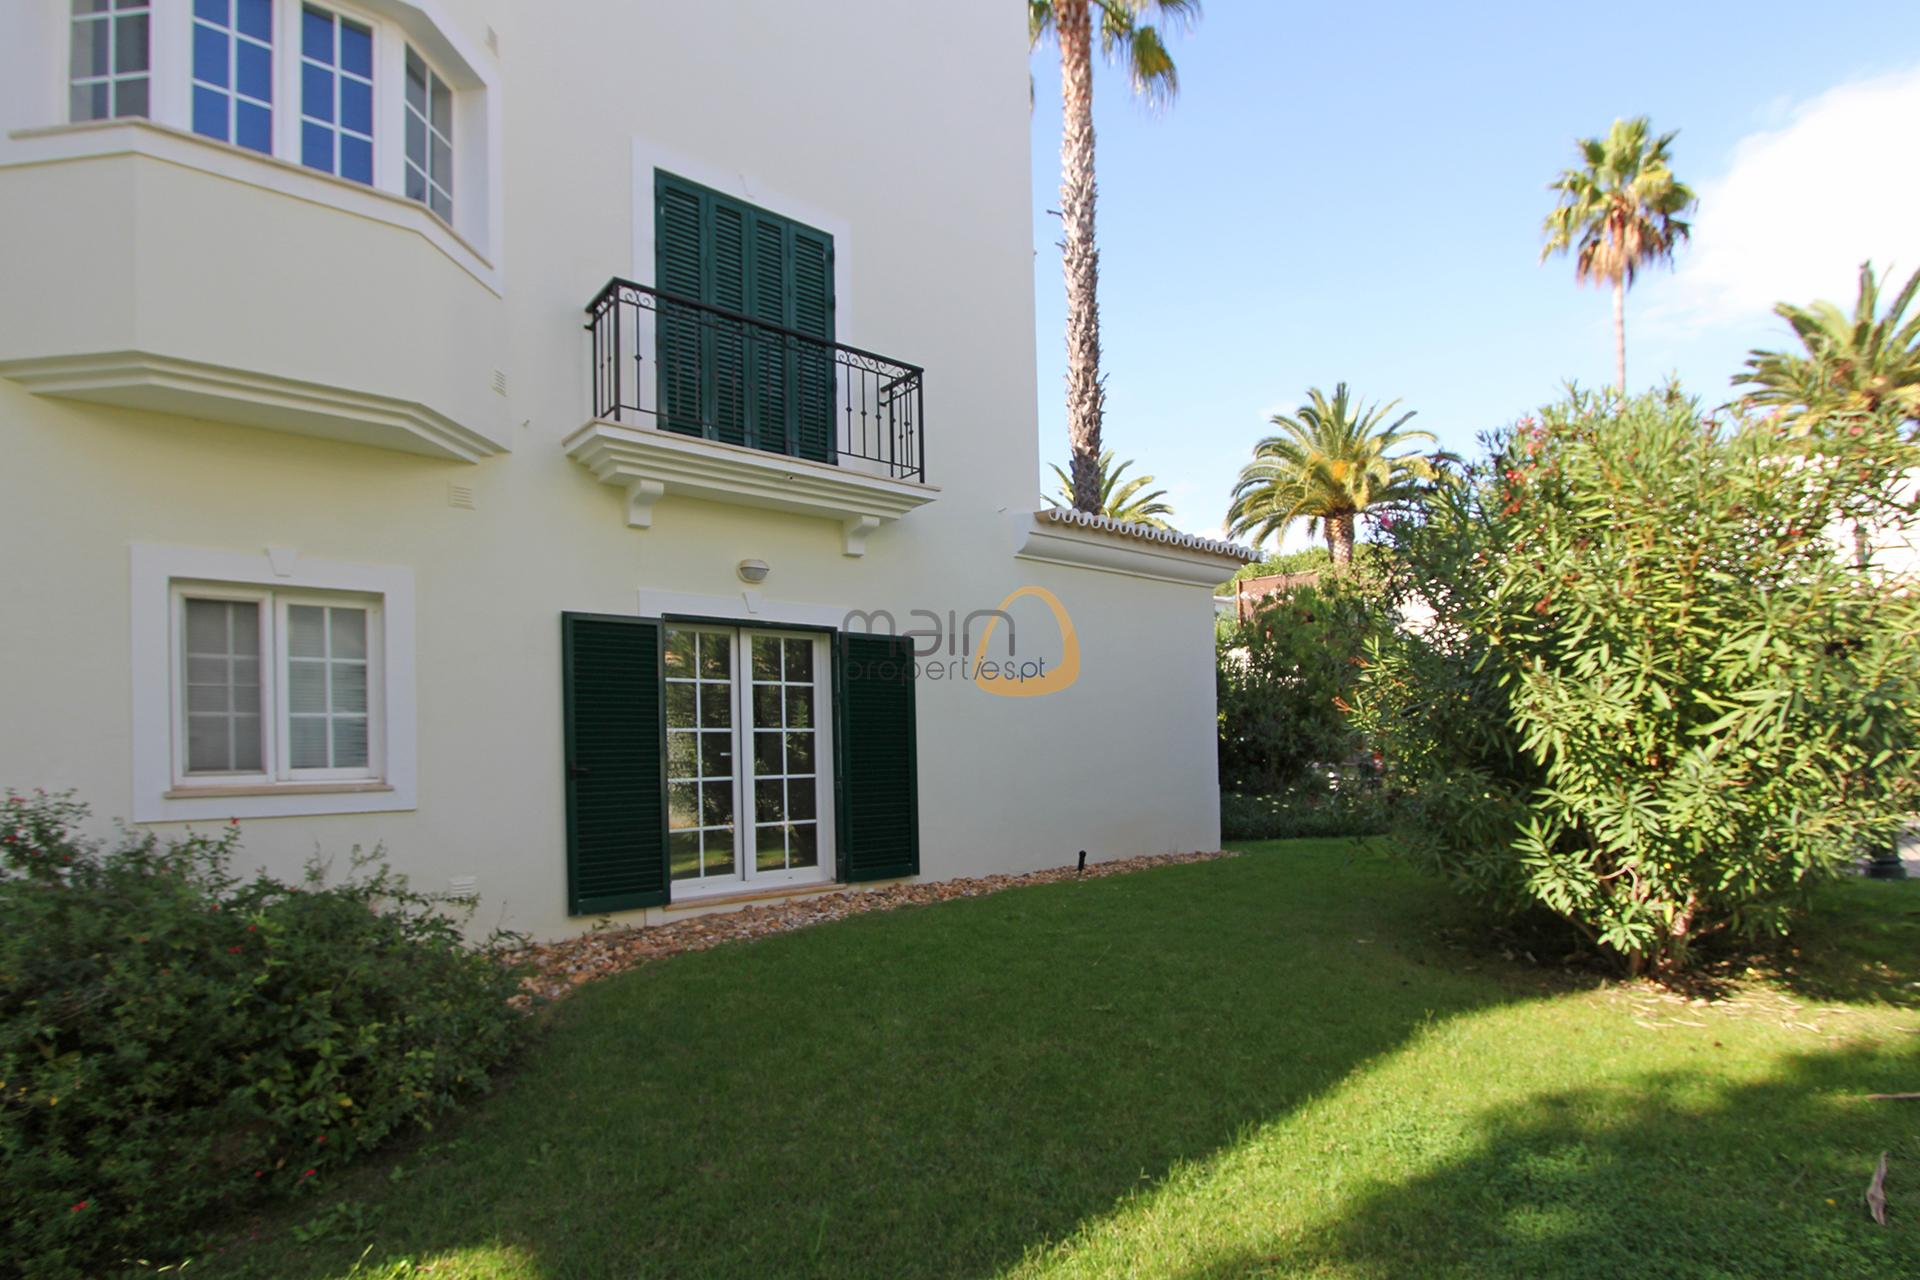 apartment-in-vale-do-lobo-algarve-golden-triangle-portugal-property-real-estate-mainproperties-mp132vdl-0